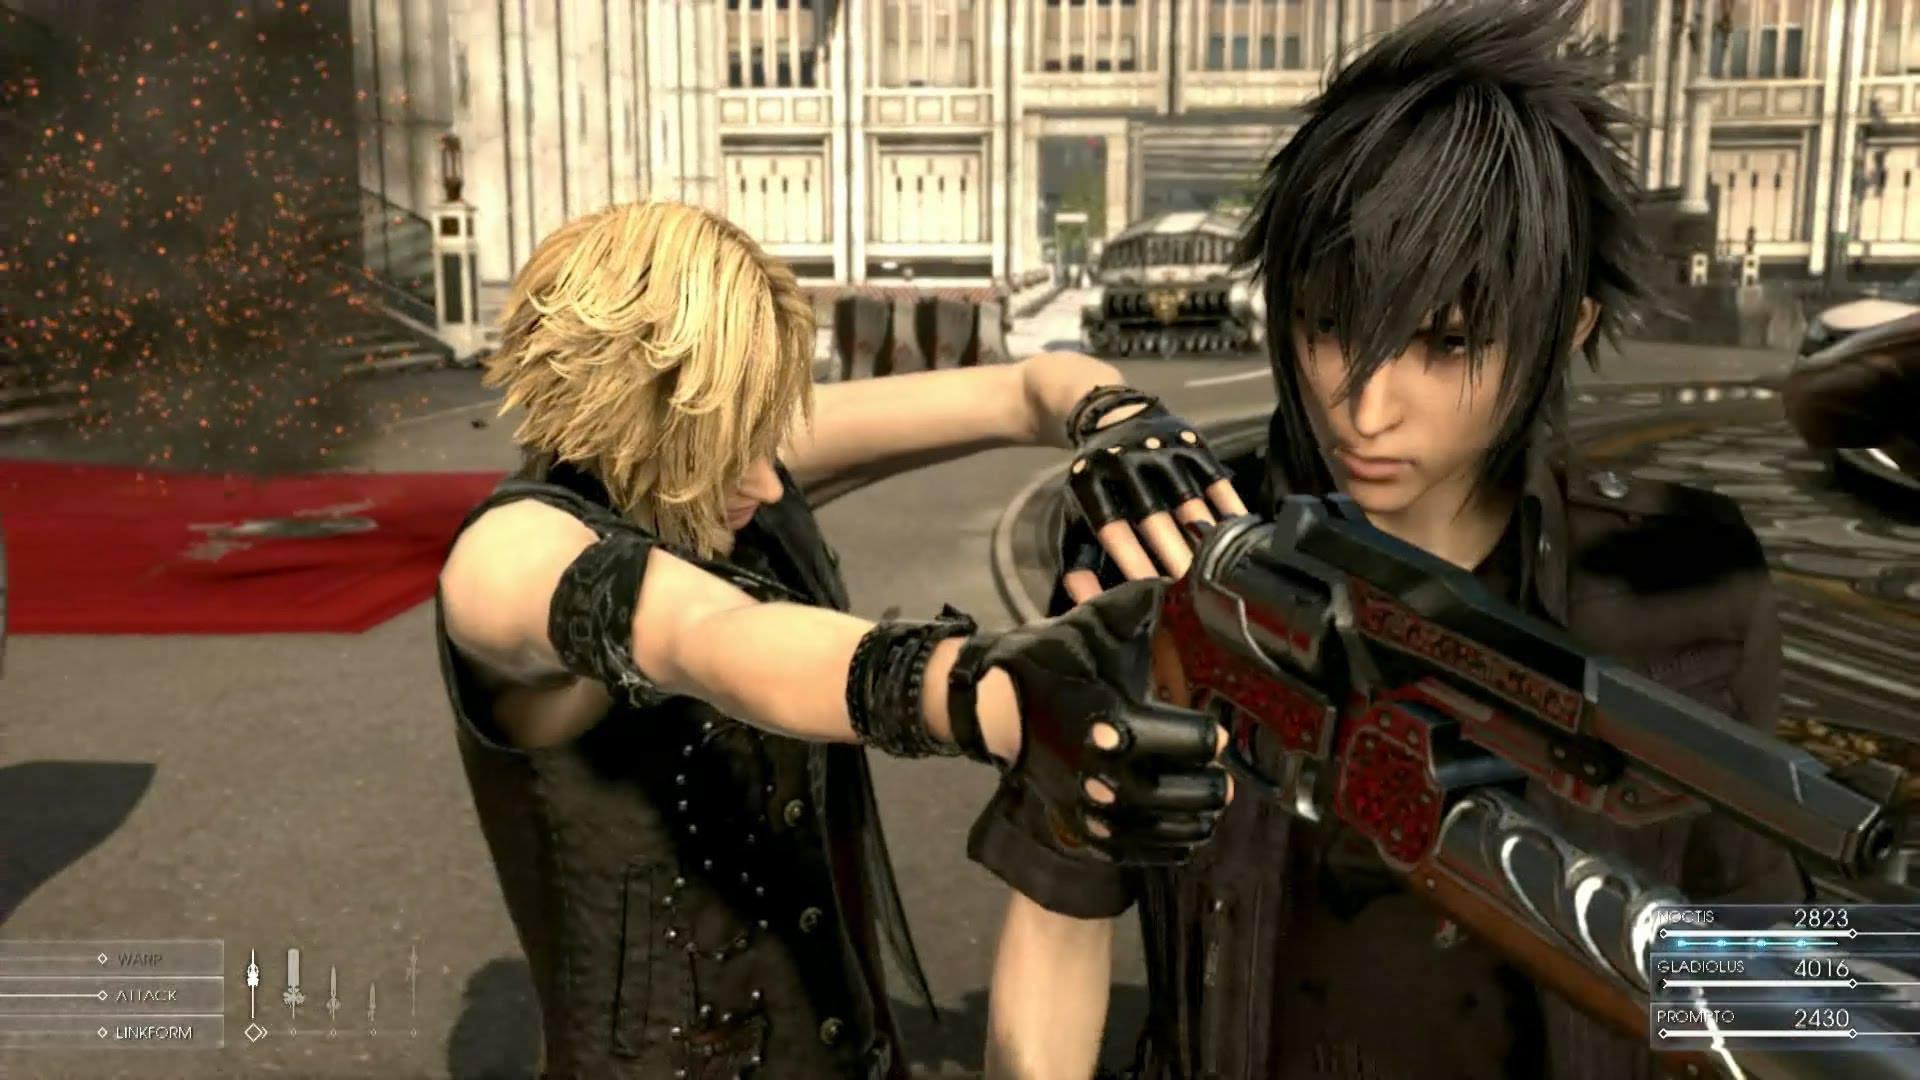 Final Fantasy 15 will feature party attacks, summons for Noctis